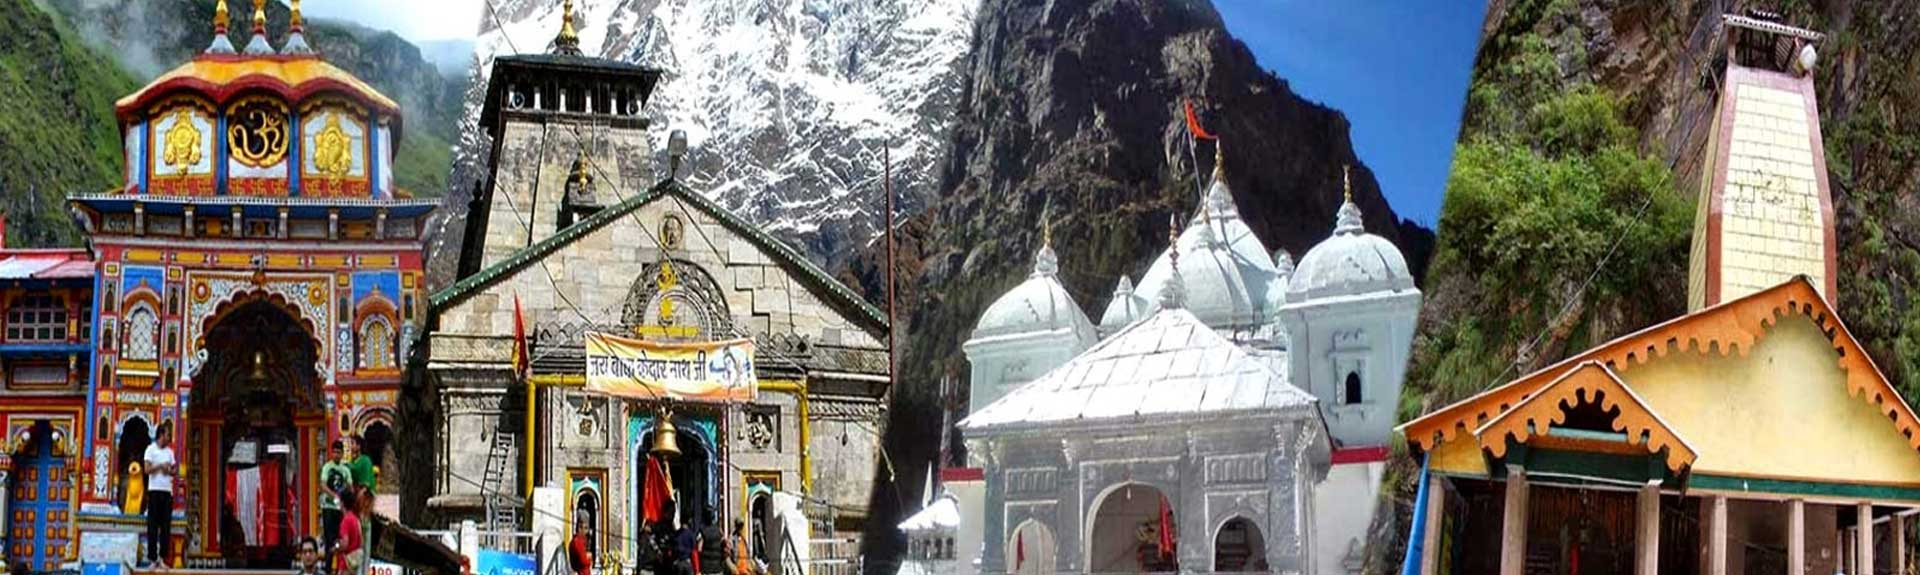 Affordable Taxi Rental for Char Dham Yatra